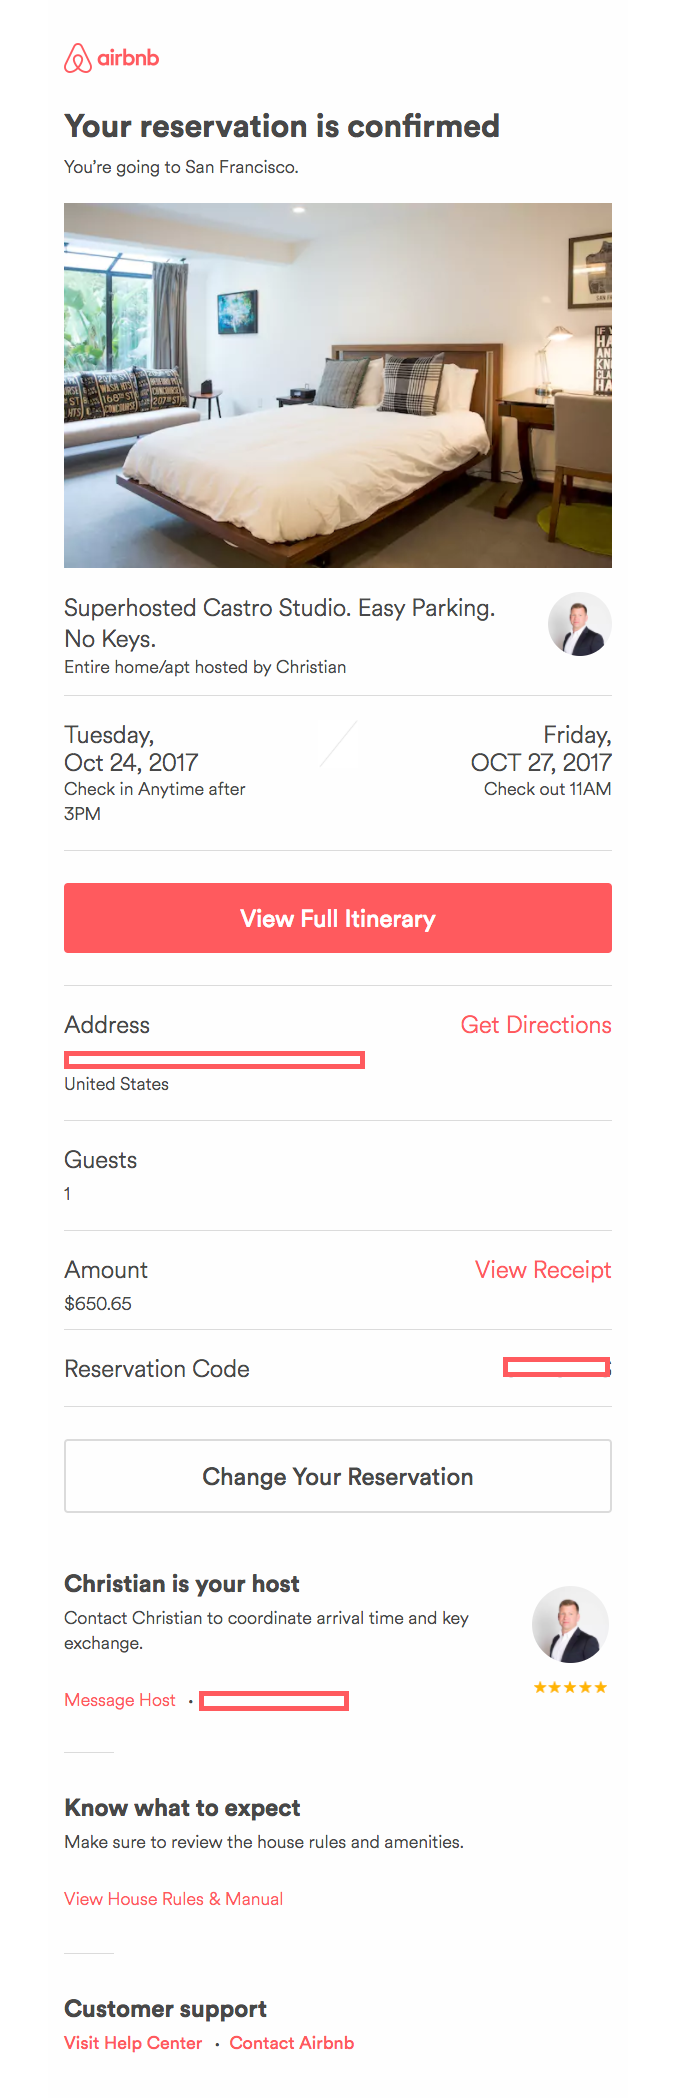 Reservation Confirmation Email Template Airbnb Confirmation Email Template Order Confirmation Email Confirmation